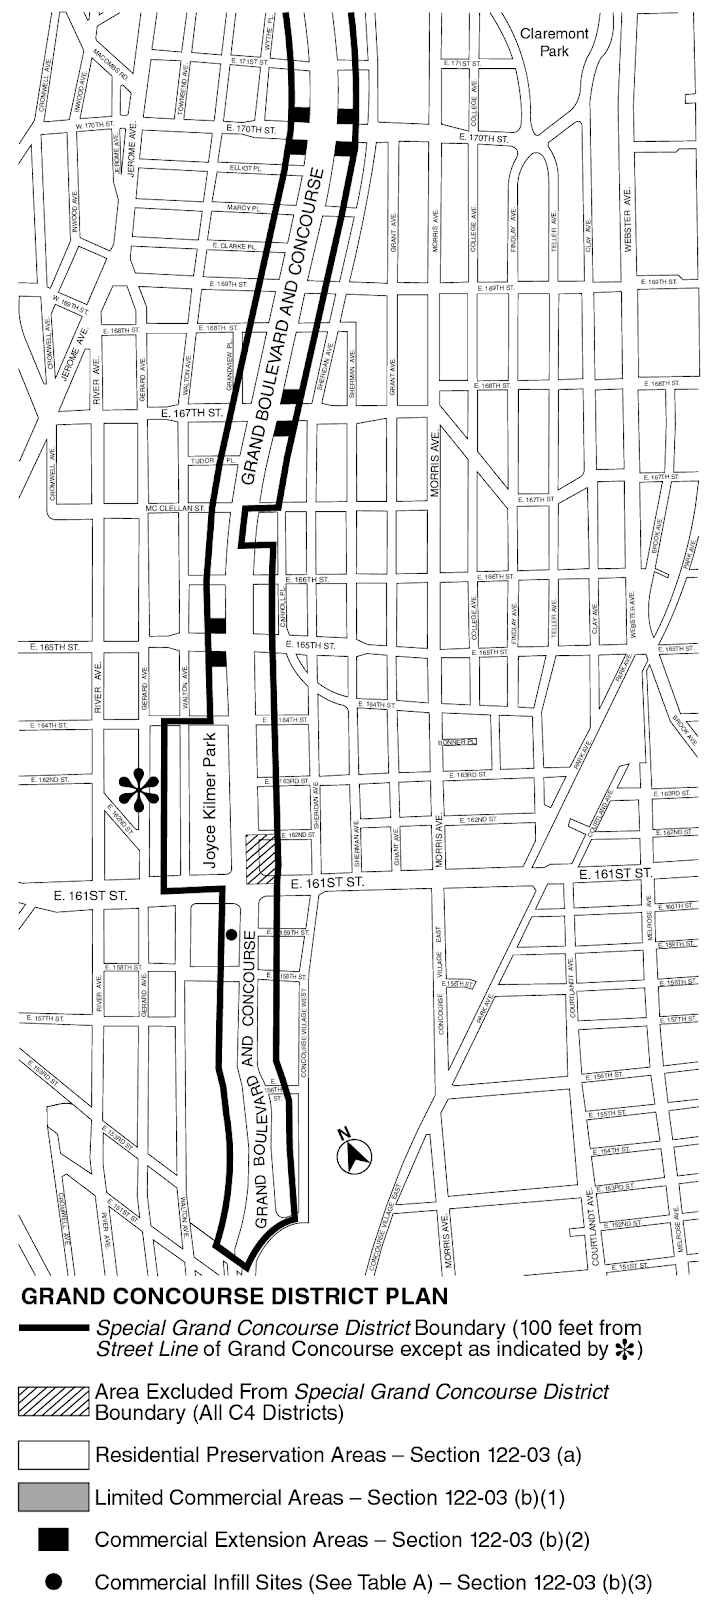 Zoning Resolutions Chapter 2: Special Grand Concourse Preservation District Appendix A.2